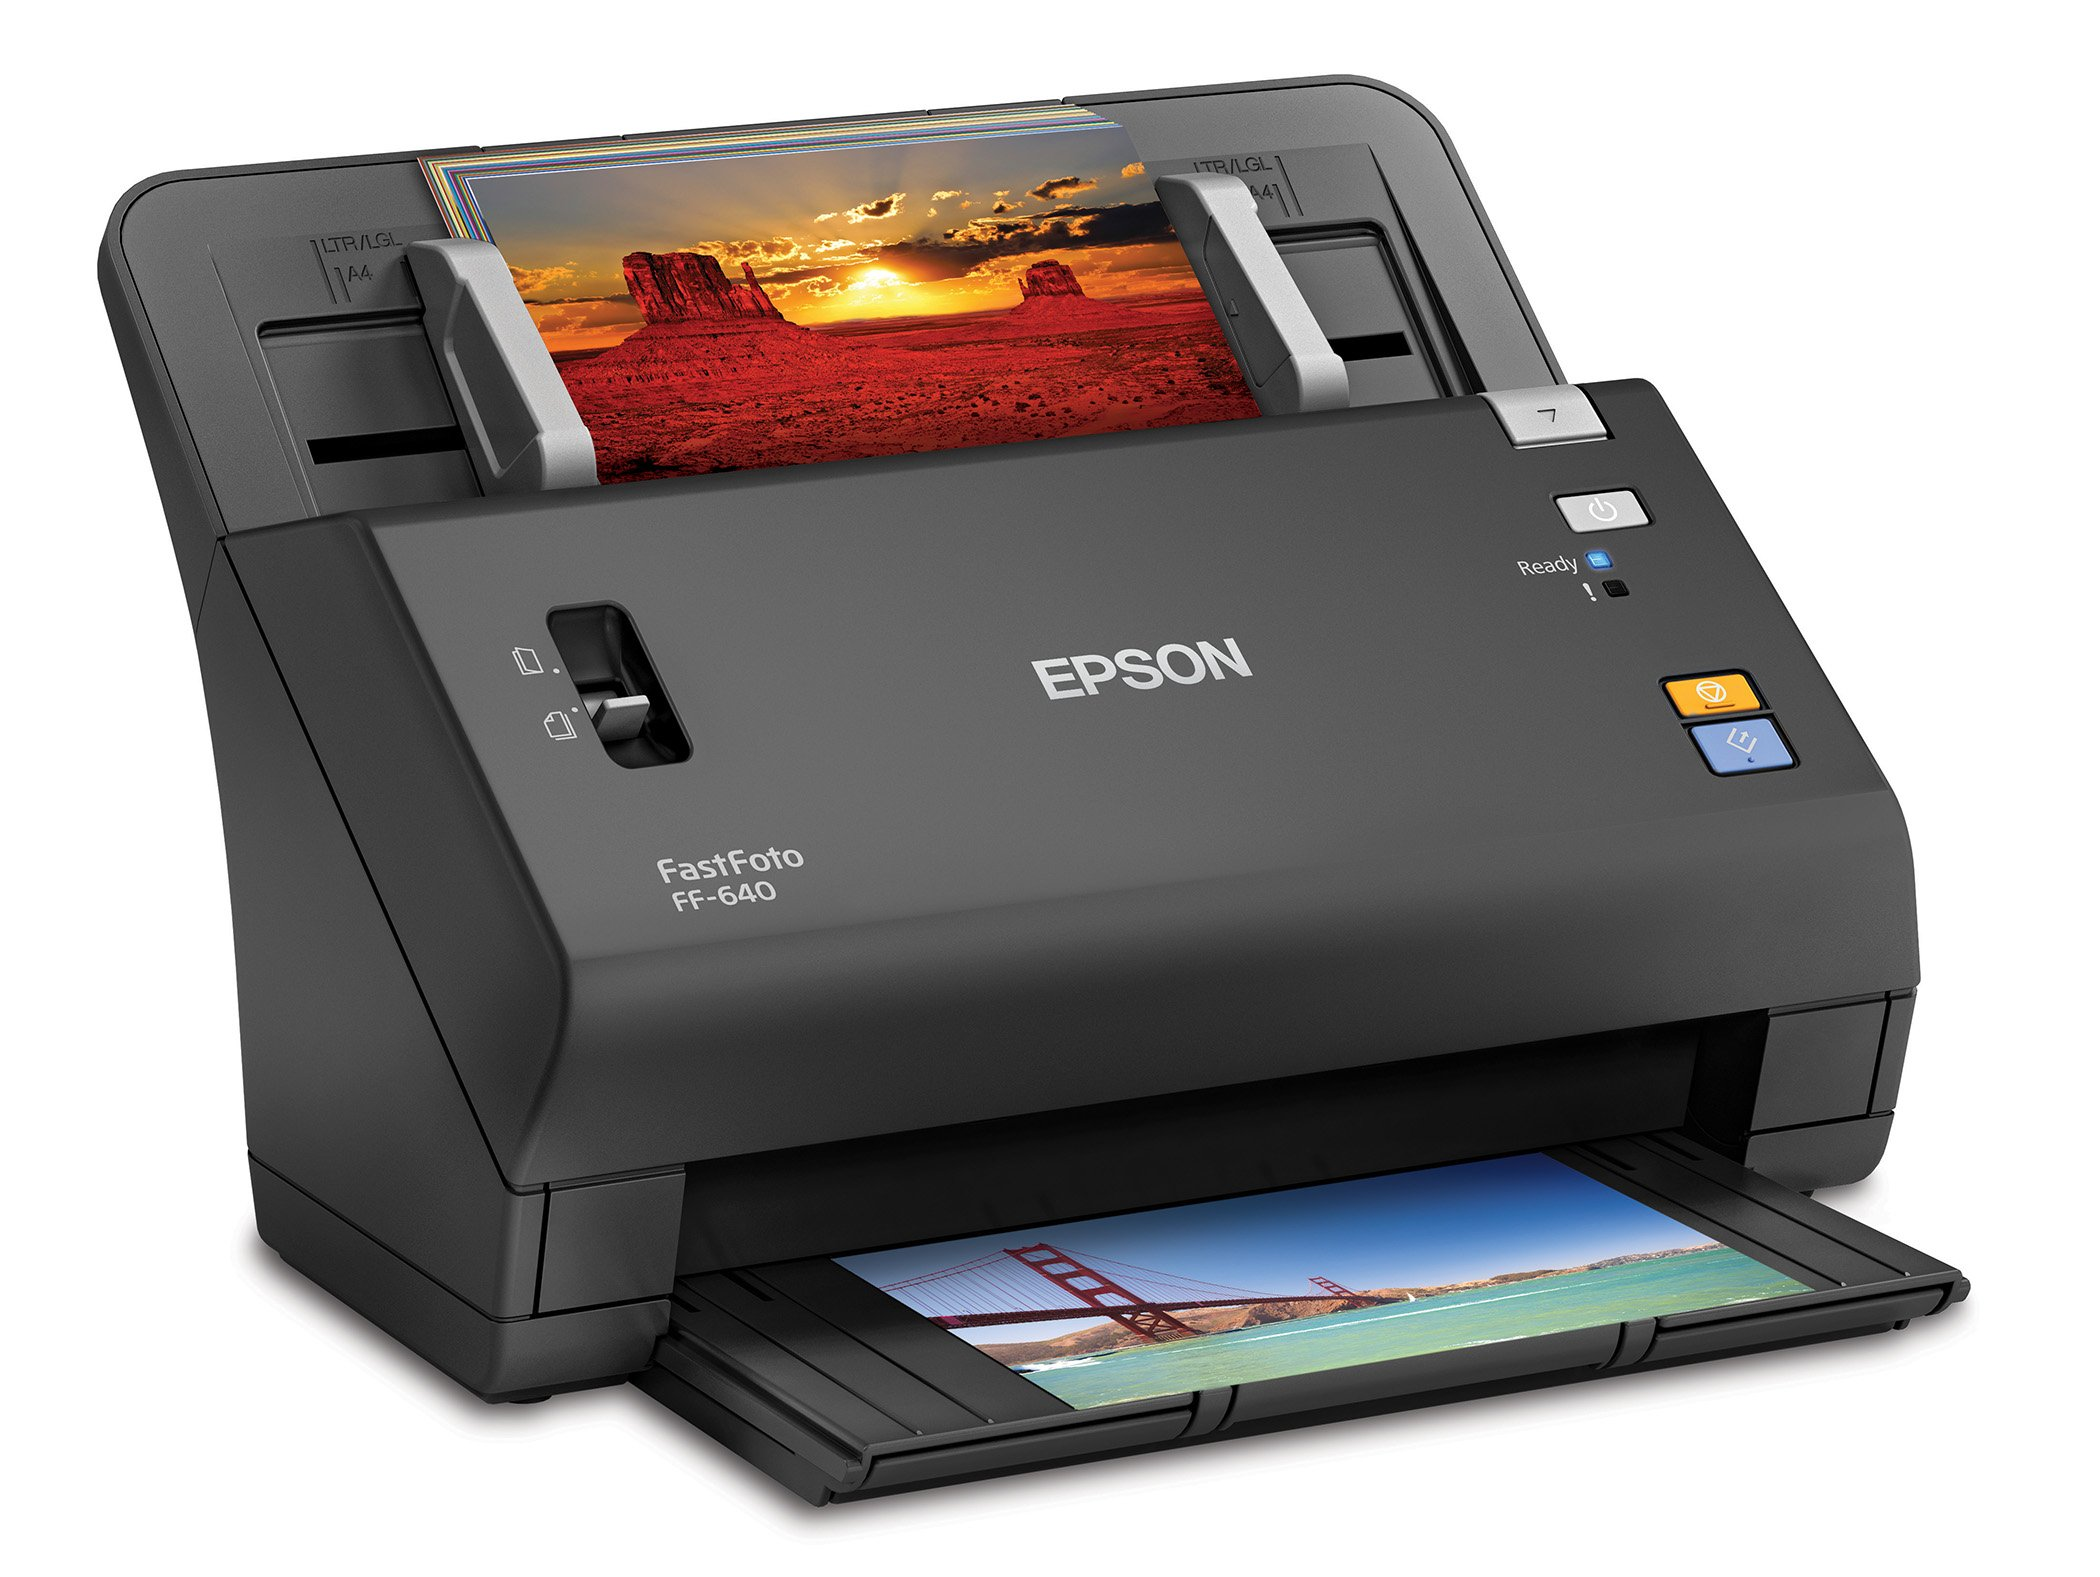 Epson FastFoto FF-640 High-Speed Photo Scanning System with Auto Photo Feeder by Epson (Image #2)